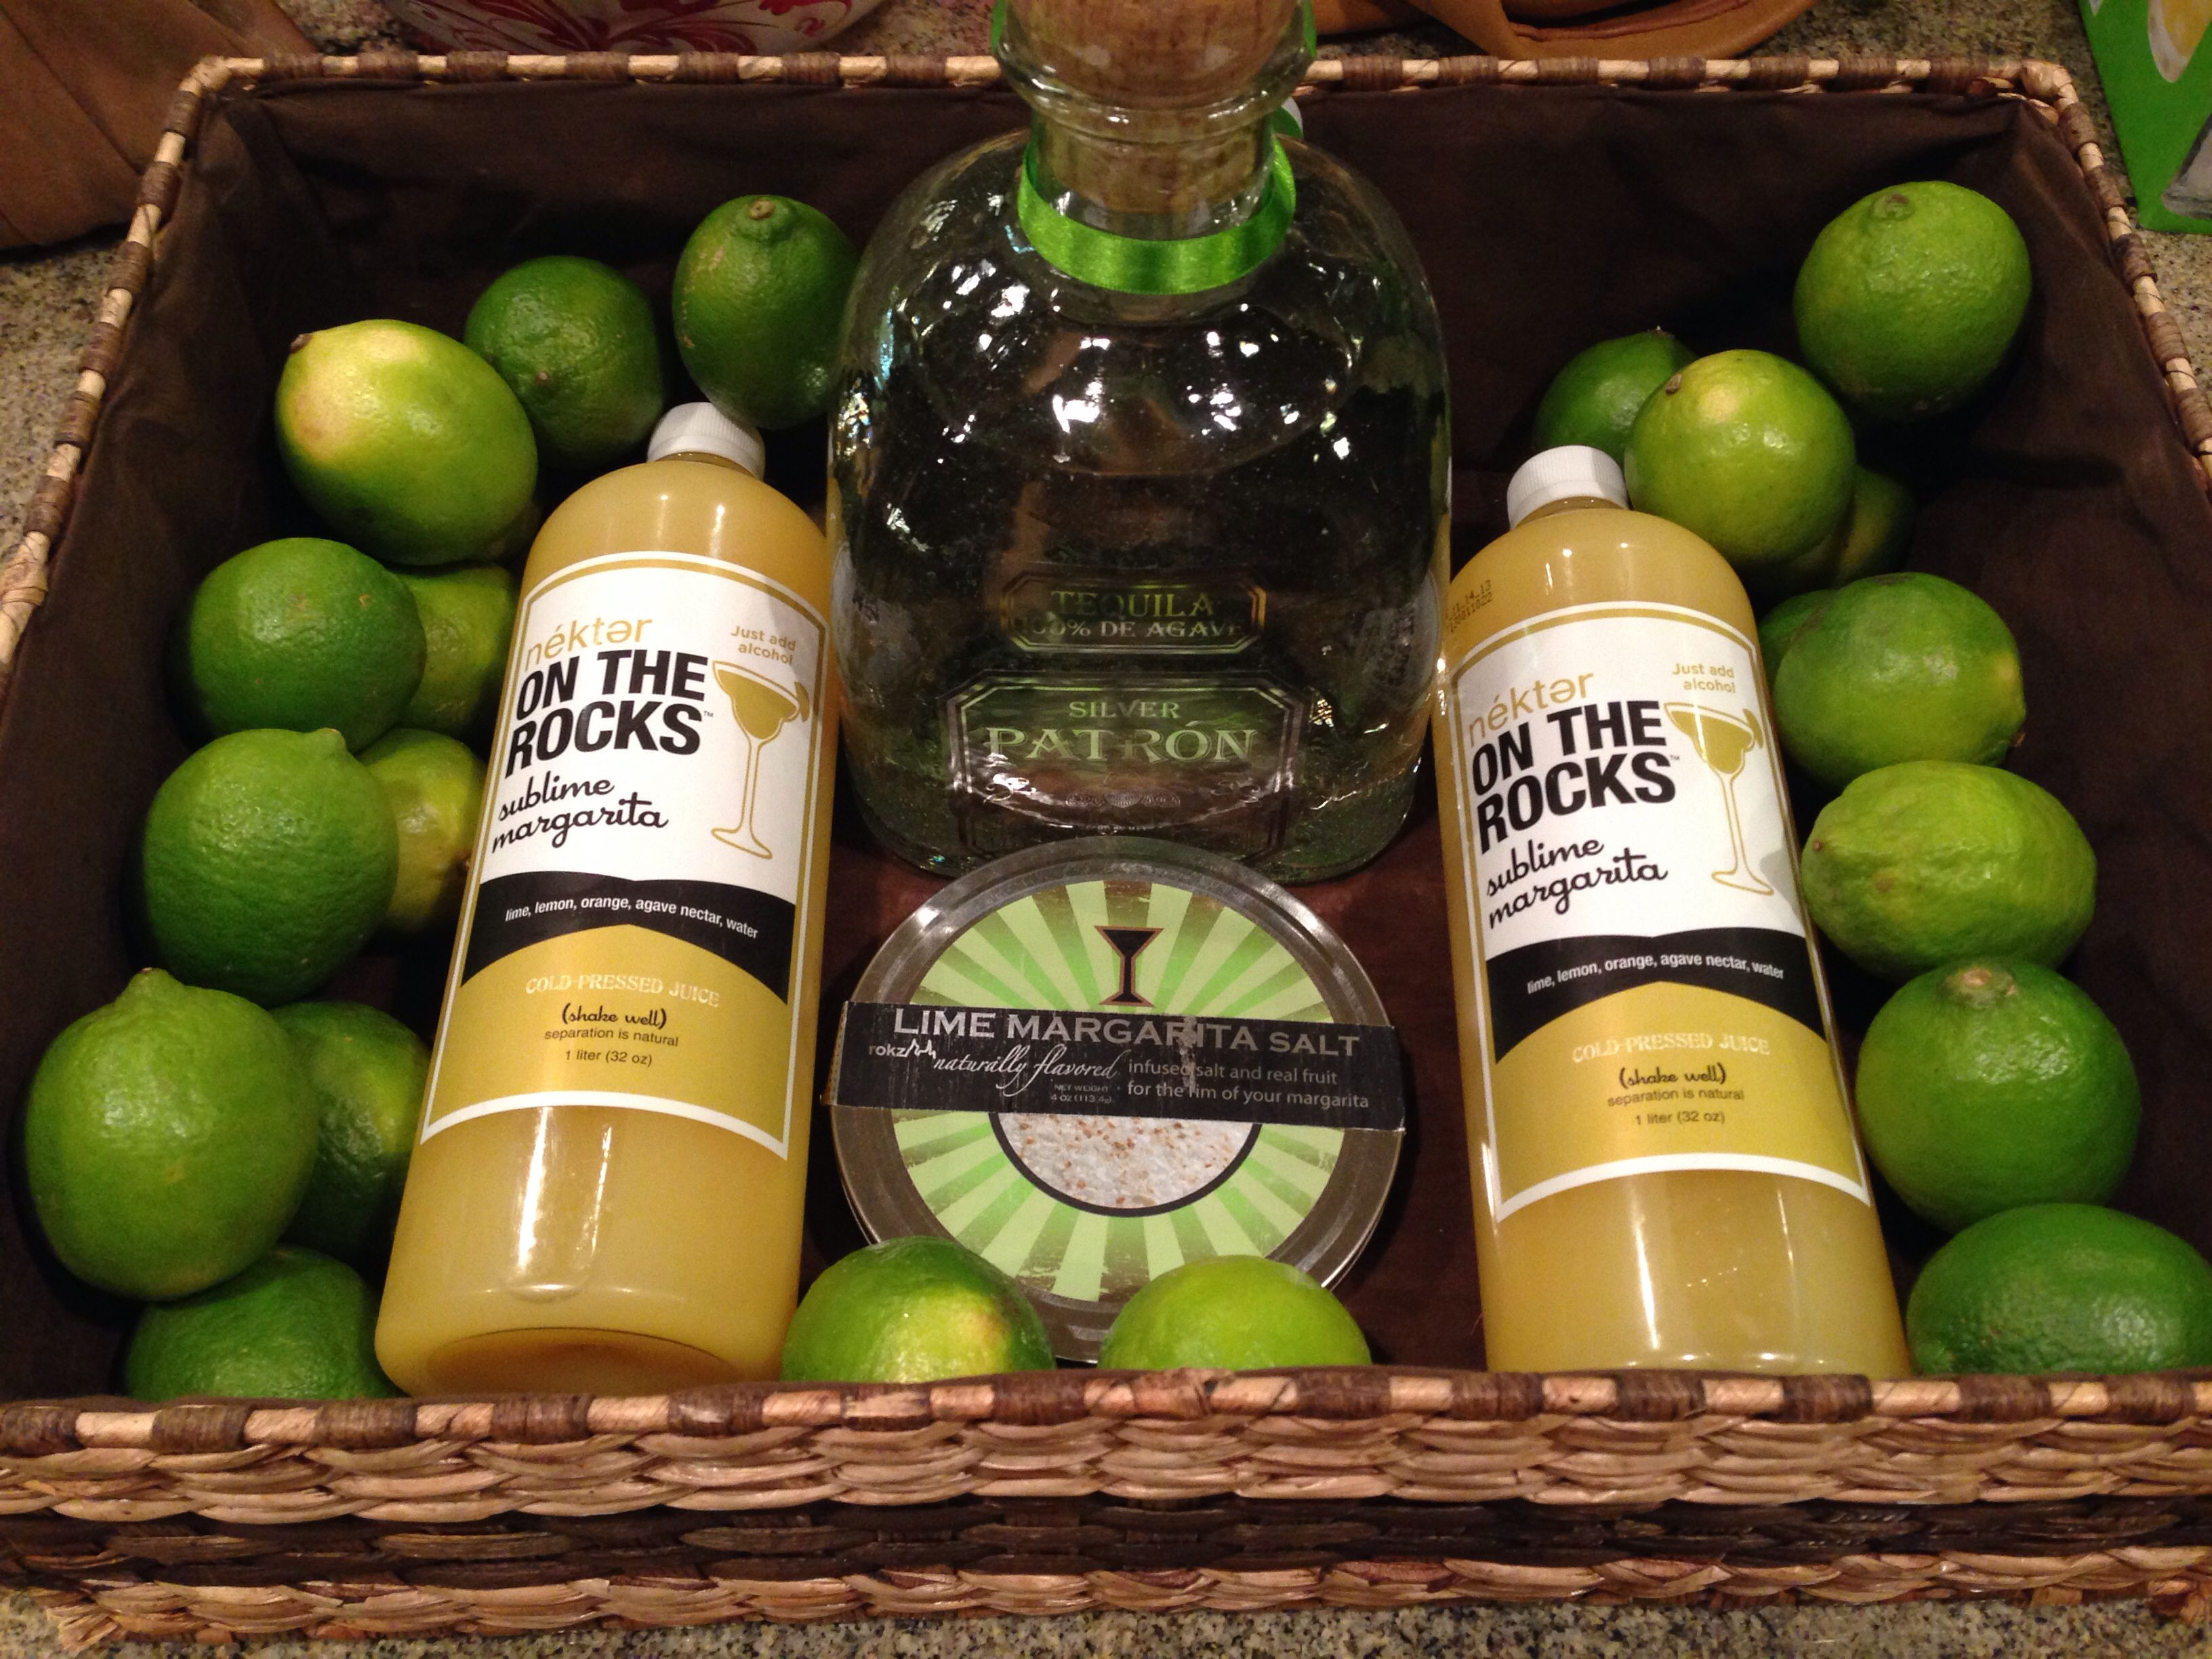 Best ideas about Tequila Gift Ideas . Save or Pin Skinny margarita t basket nekter juice patron Now.